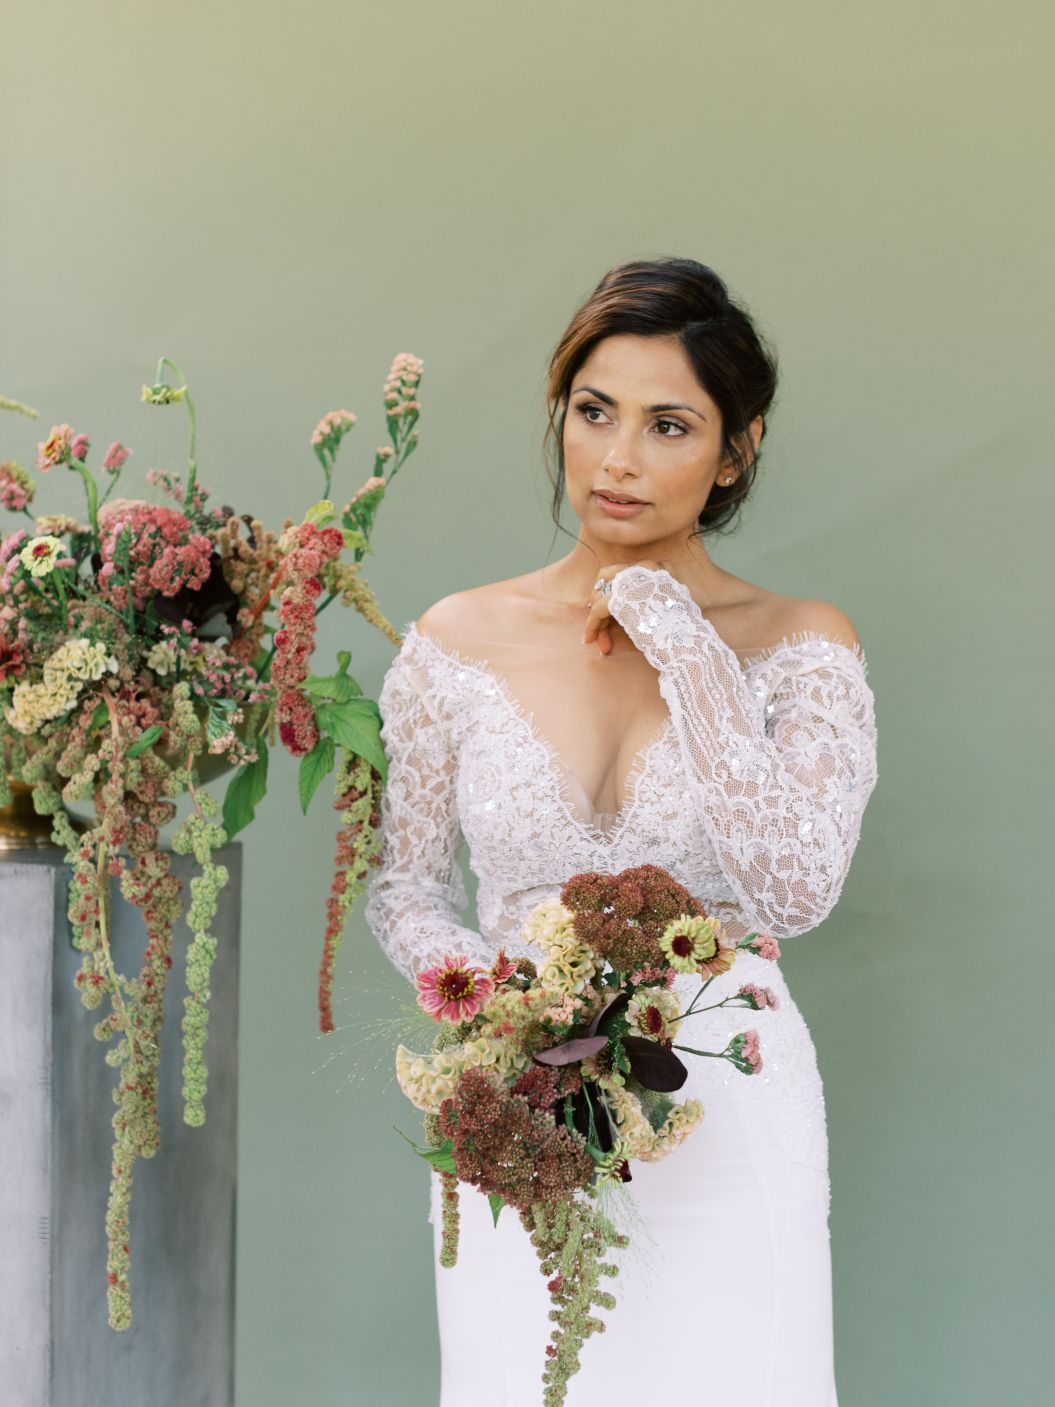 bride holding bouquet standing near flowers